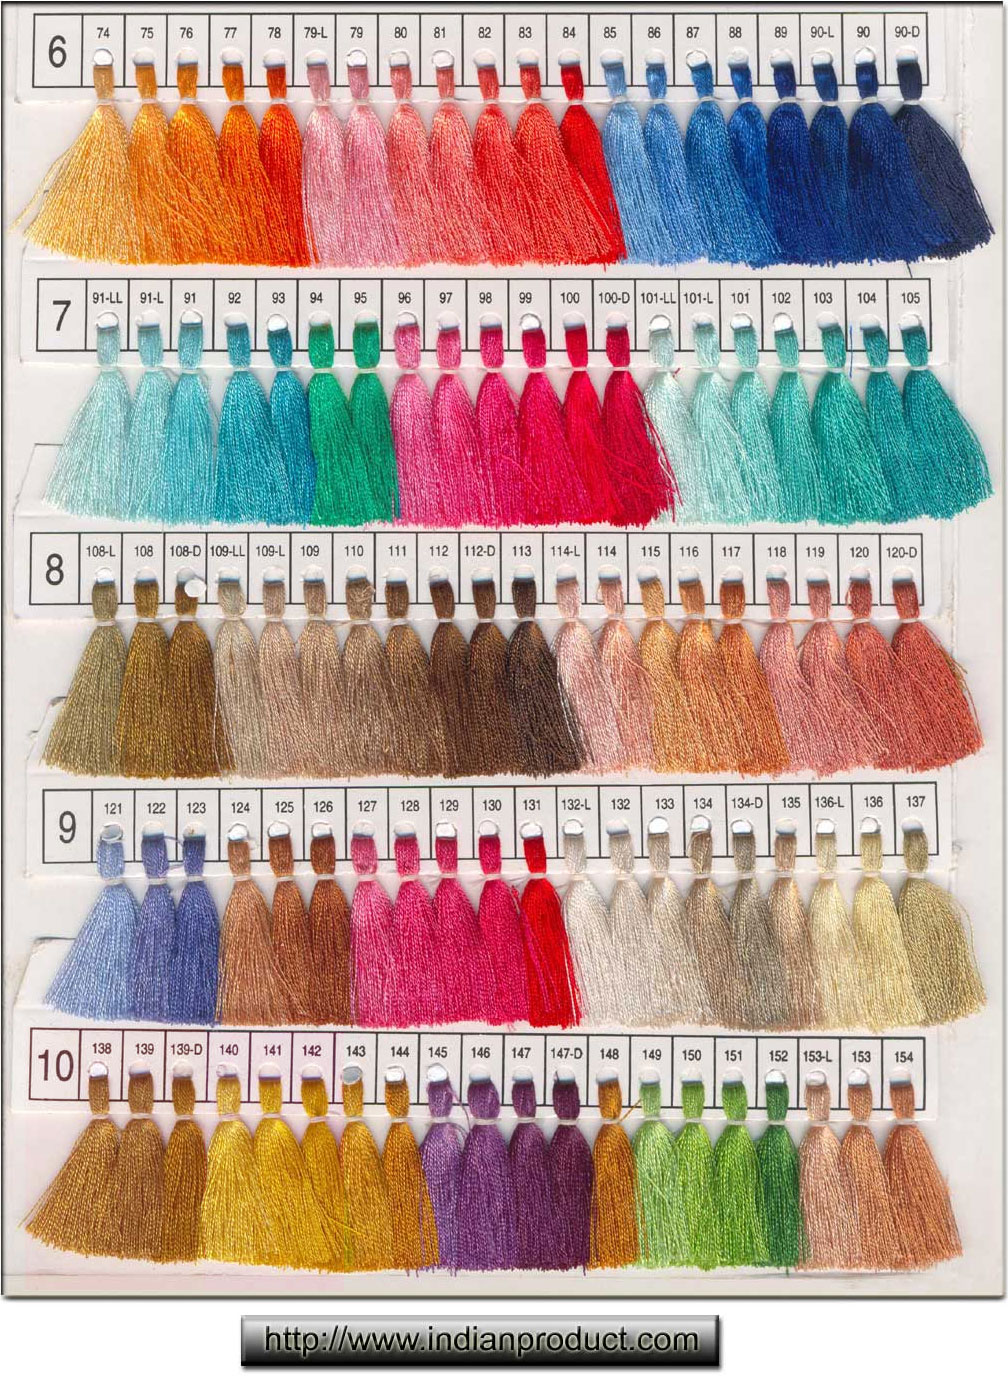 Color Chart Indianproduct Com